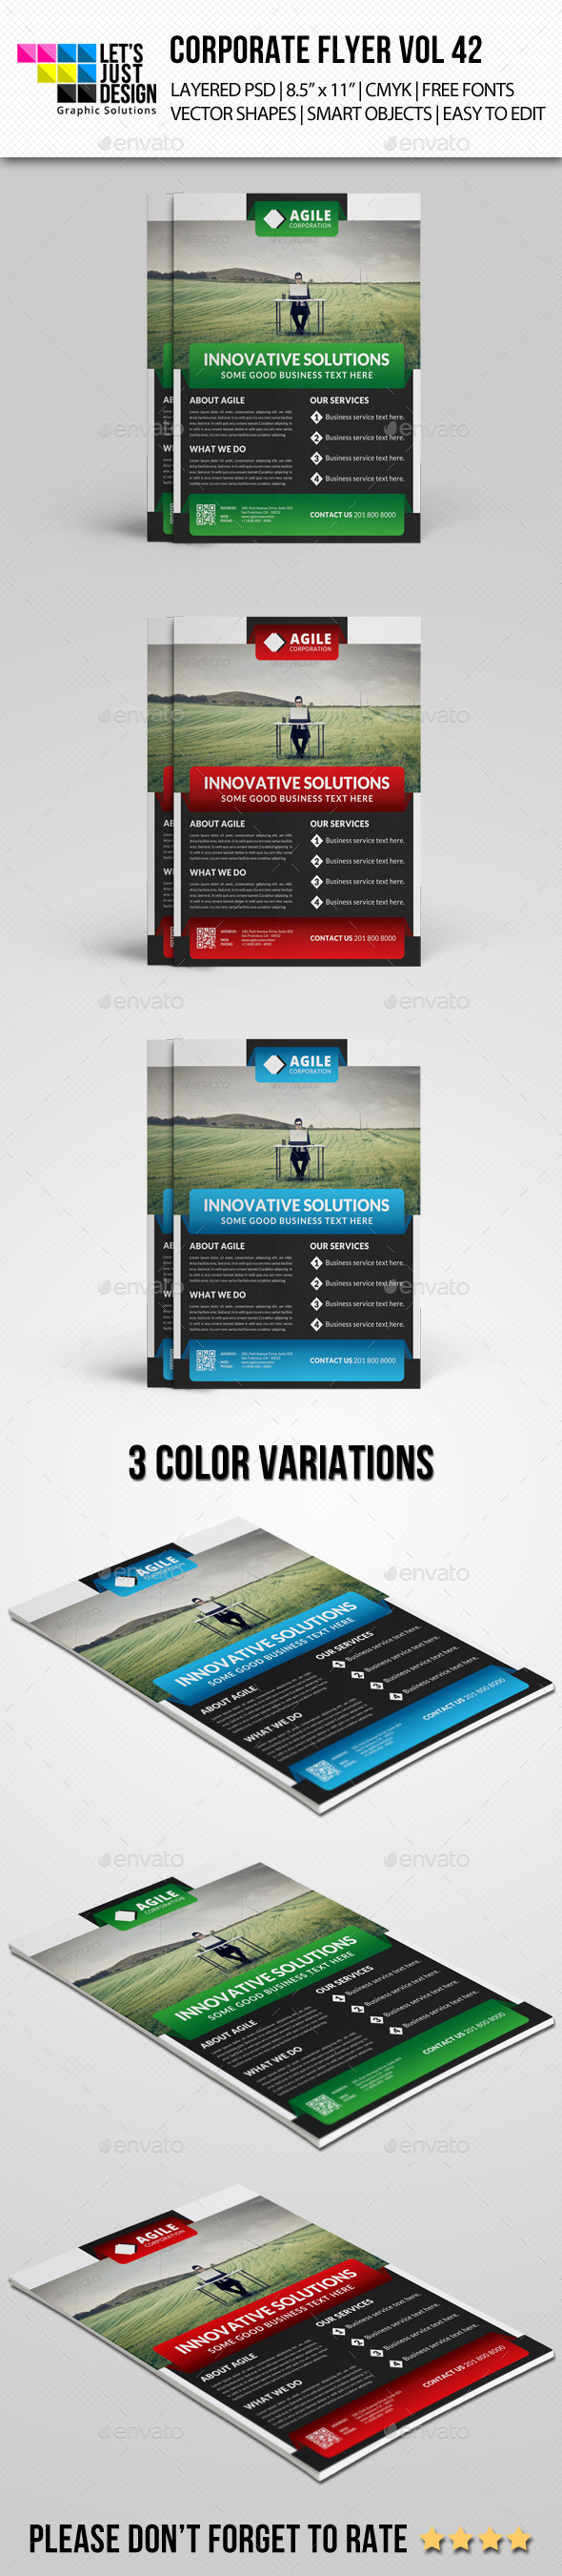 Corporate Flyer Template Vol 42 - Corporate Flyers